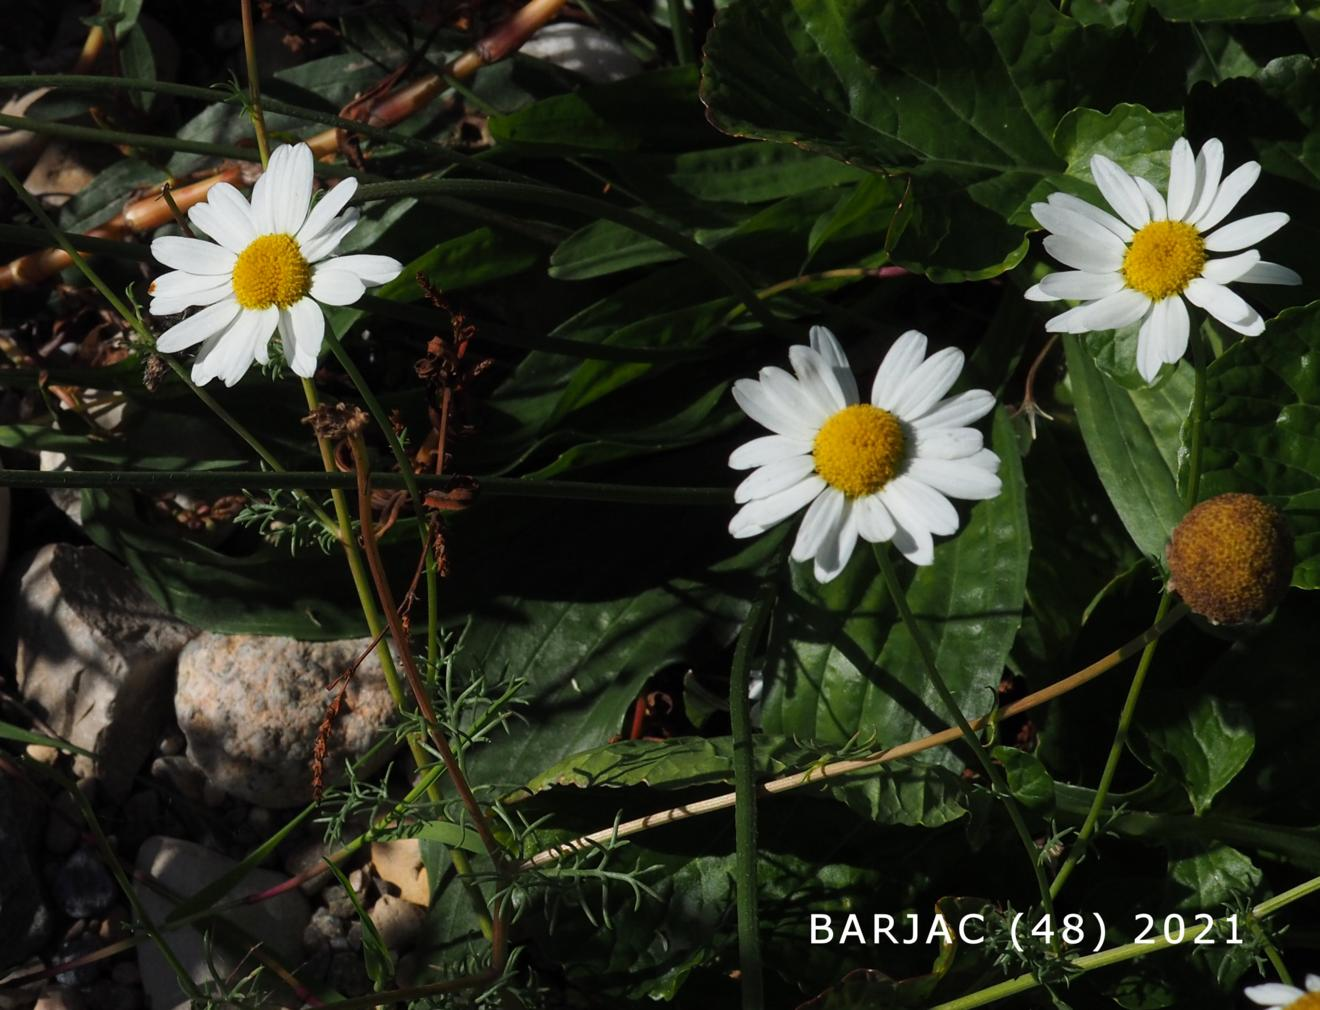 Mayweed, Scentless